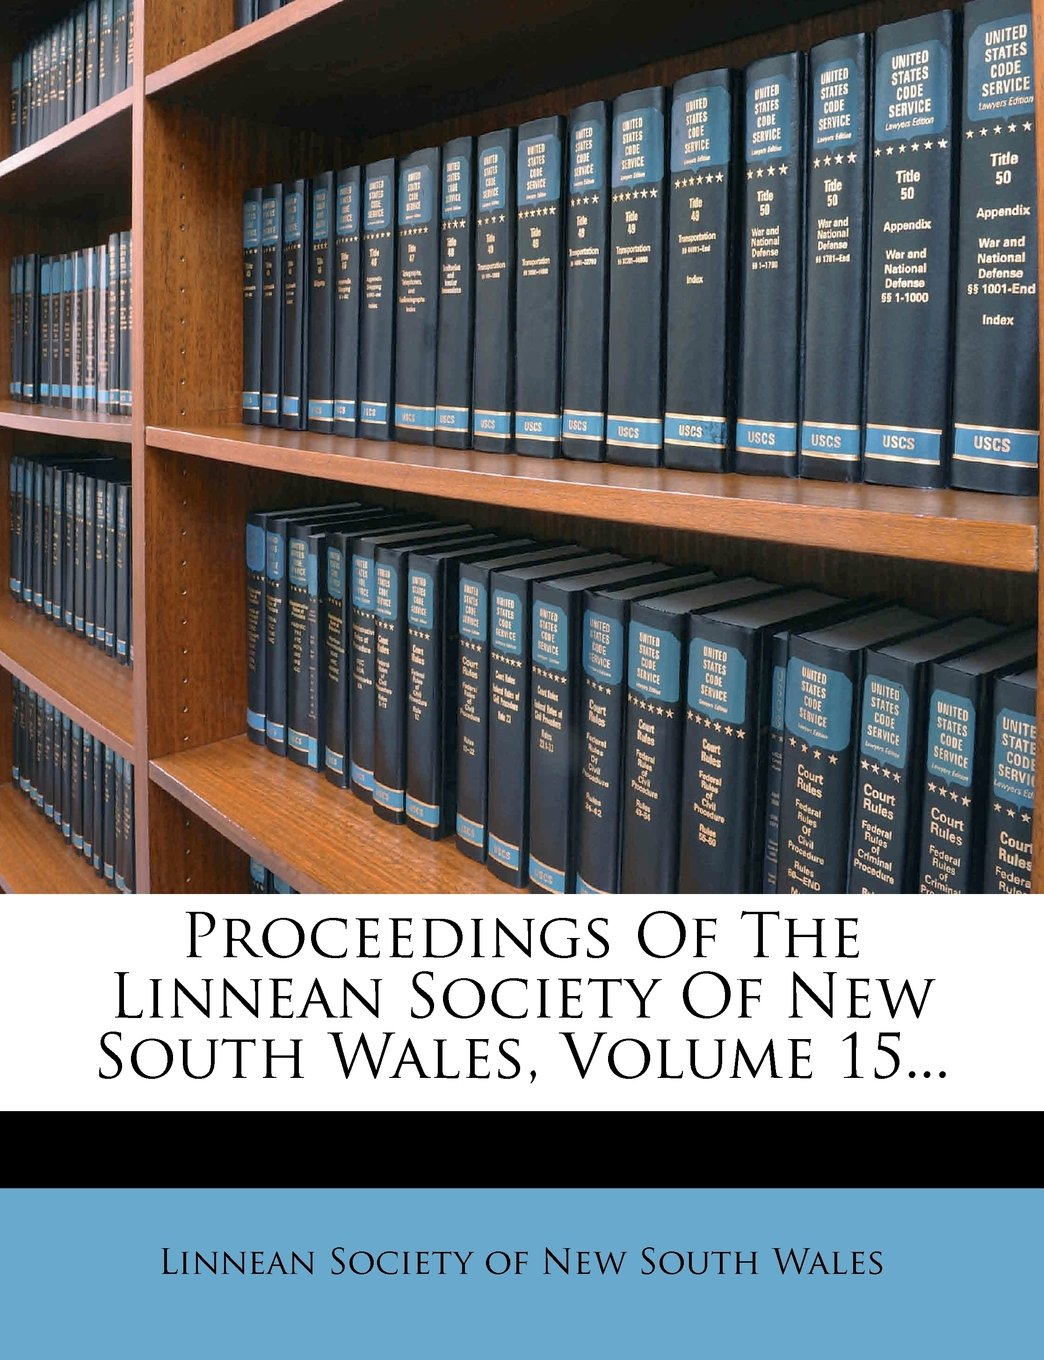 Proceedings Of The Linnean Society Of New South Wales, Volume 15... ebook